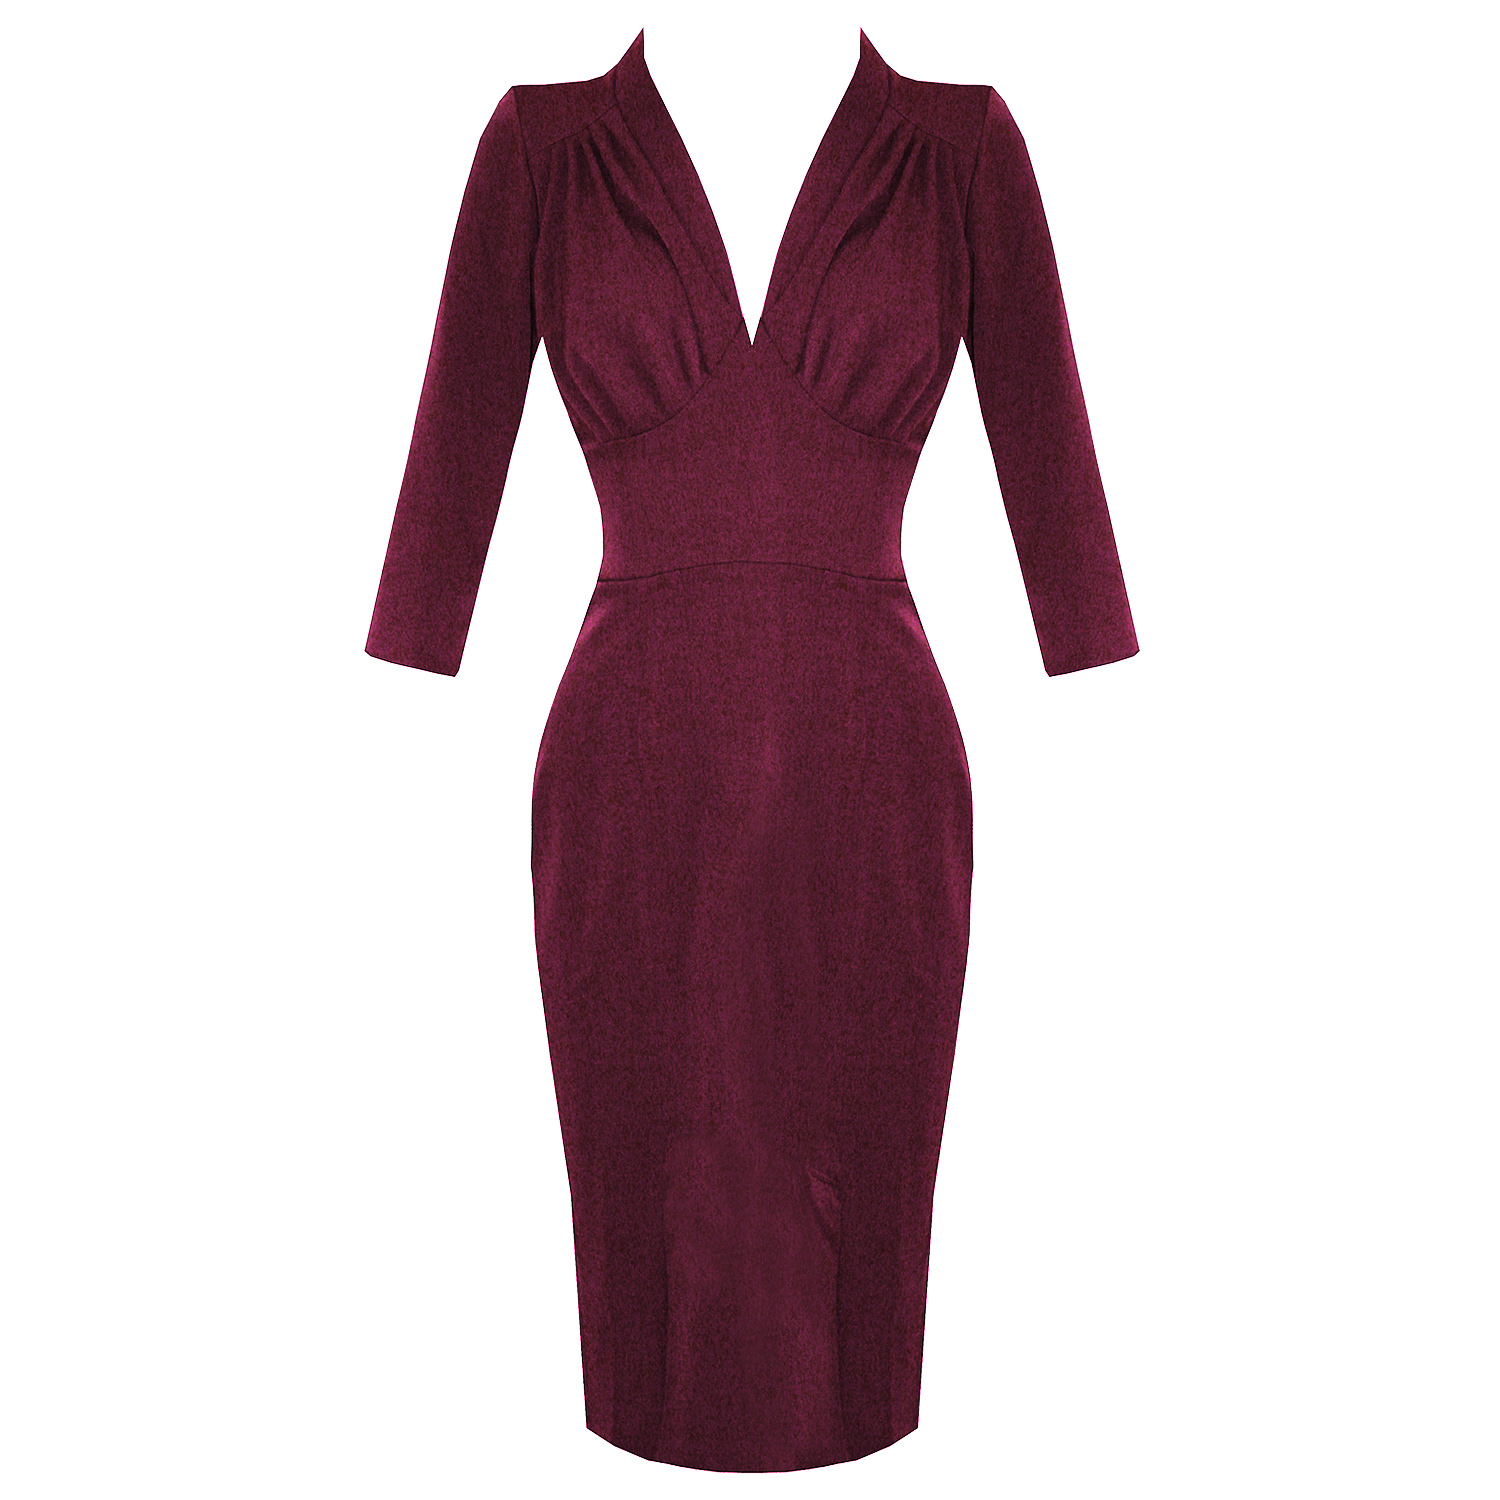 http://images.esellerpro.com/2516/I/171/79/stock_misscandyfloss_dress_malenasue_burgundy_g.jpg